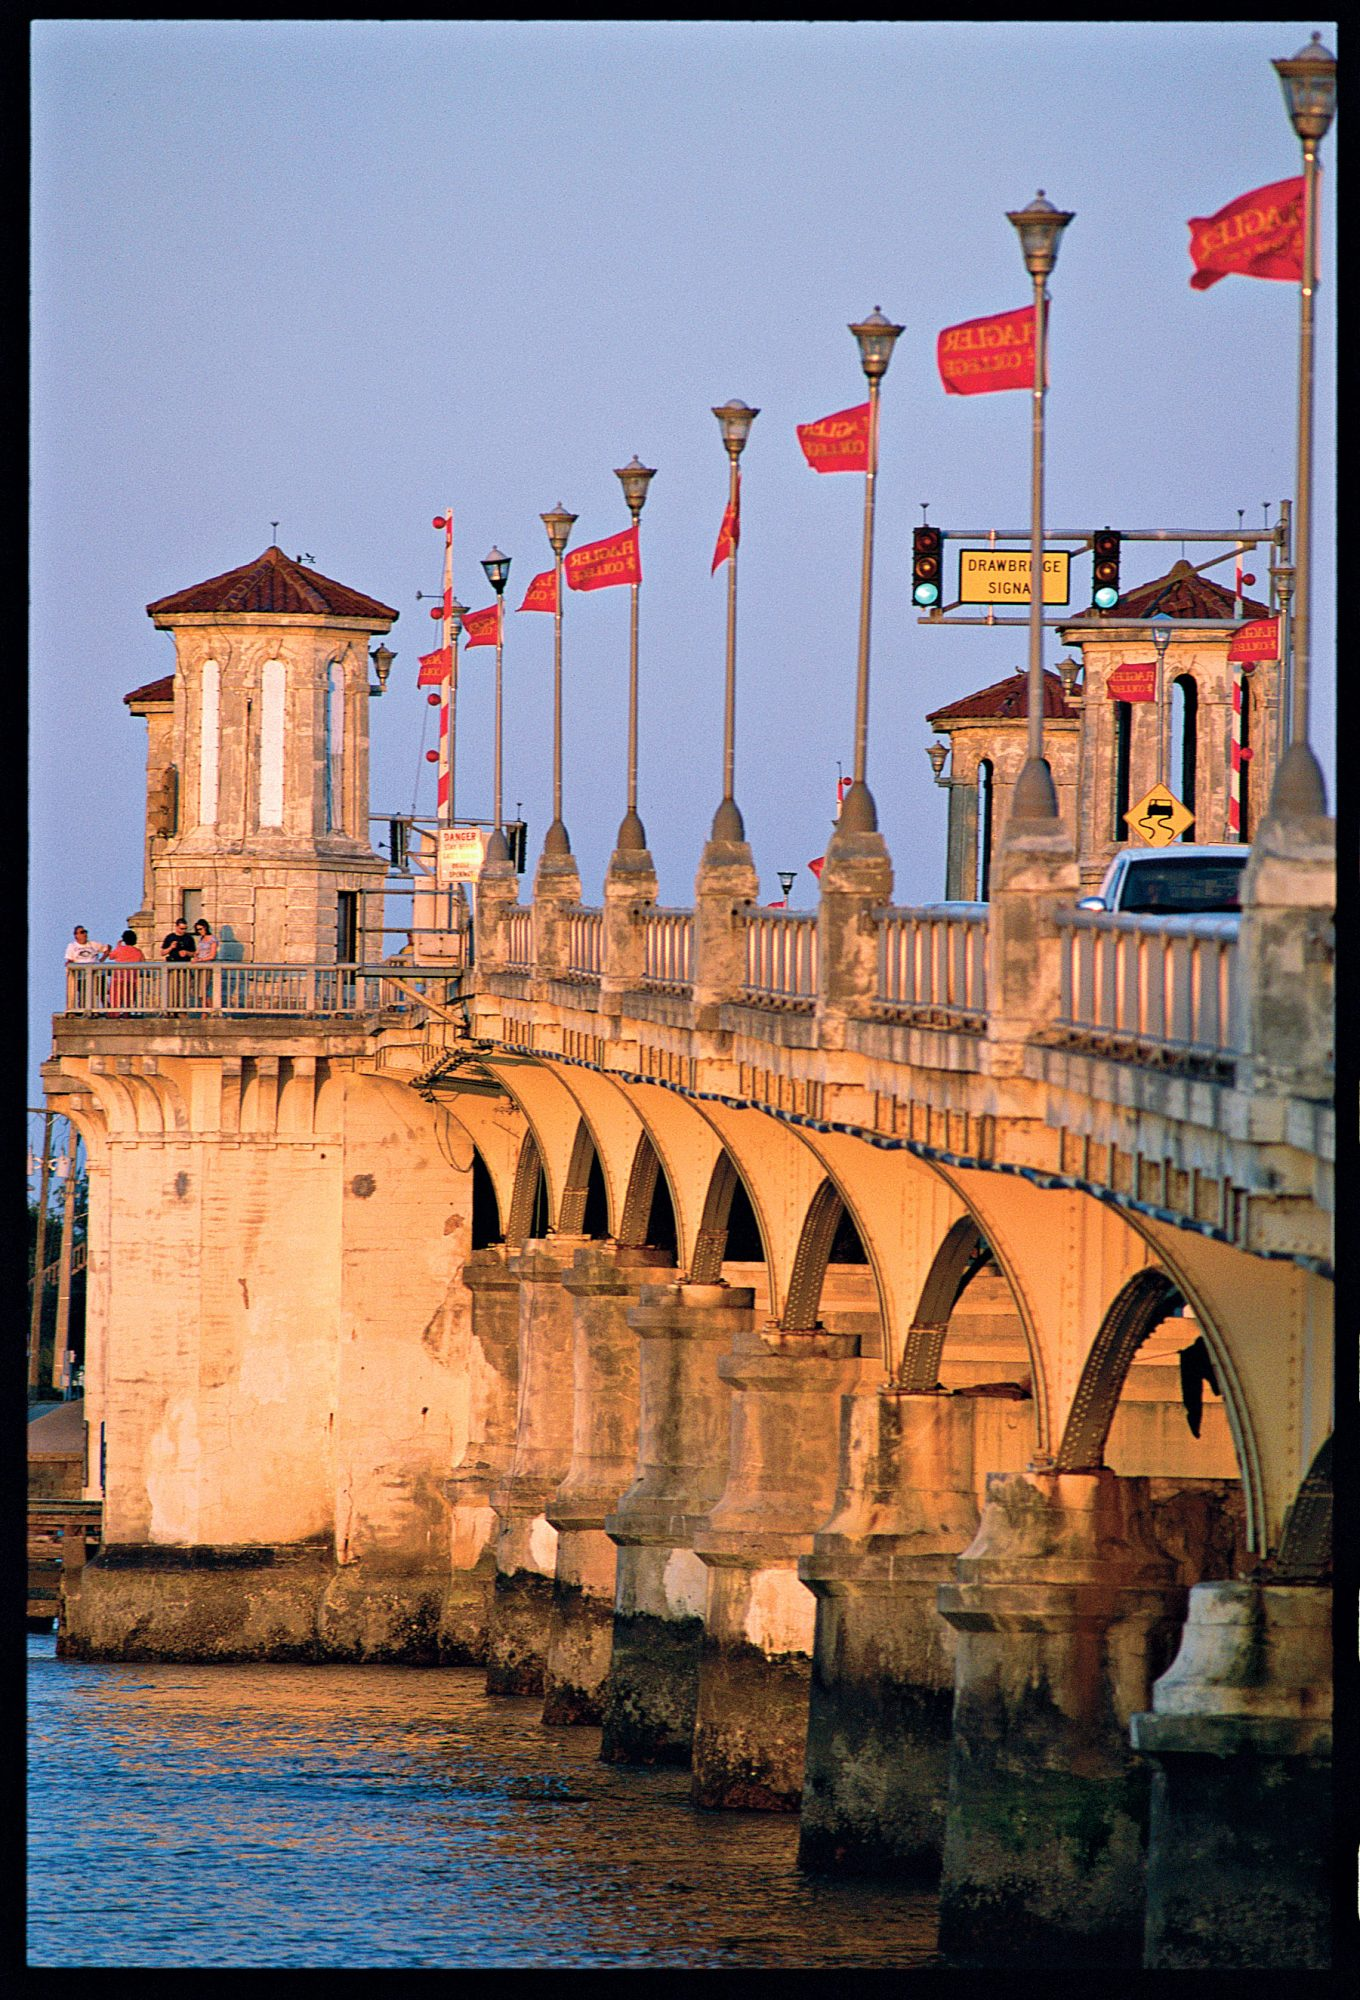 Bridge of Lions, St. Augustine, Florida